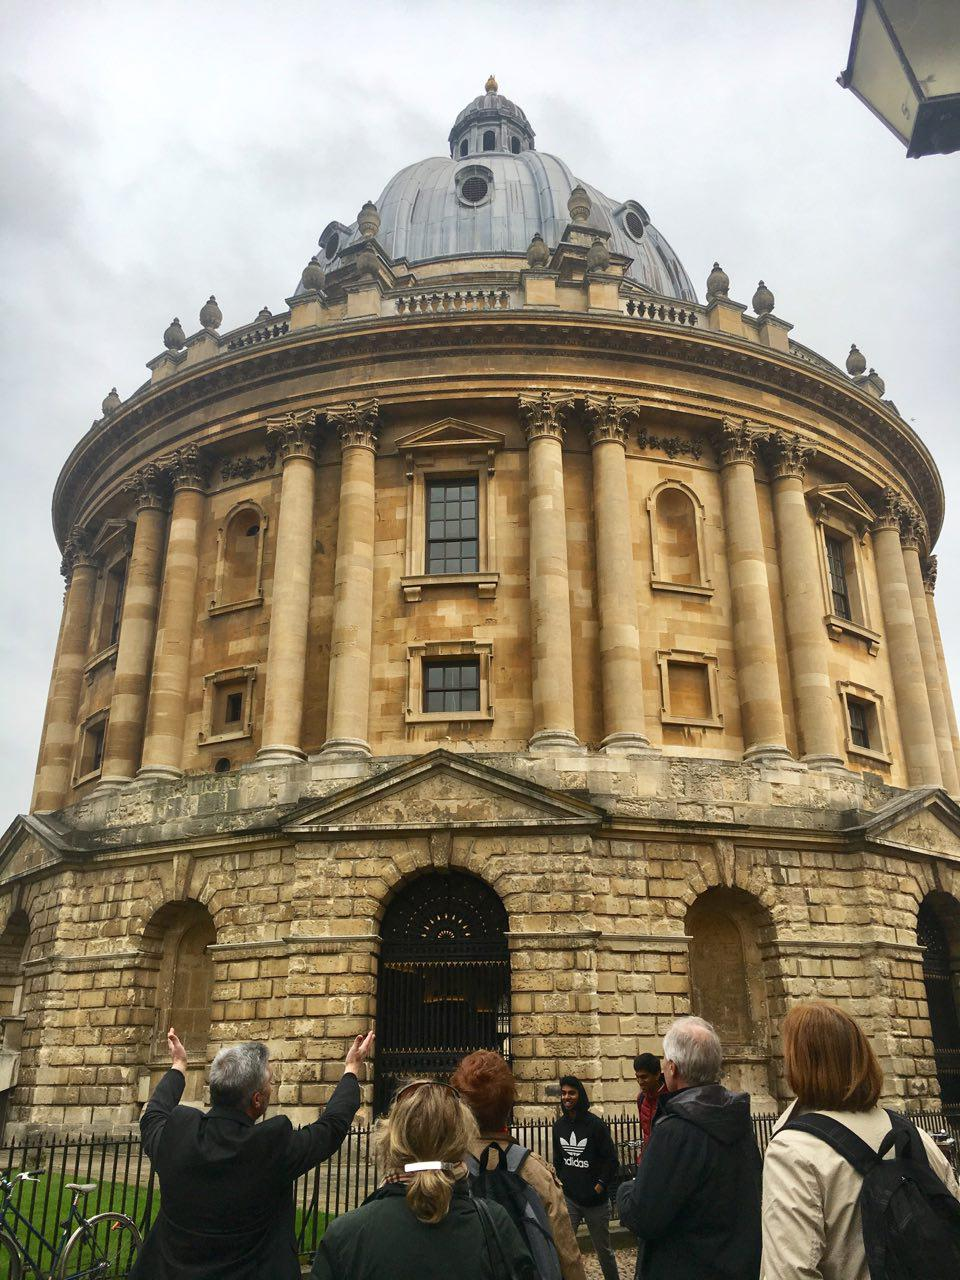 Adrian giving an extensive tour of Oxford